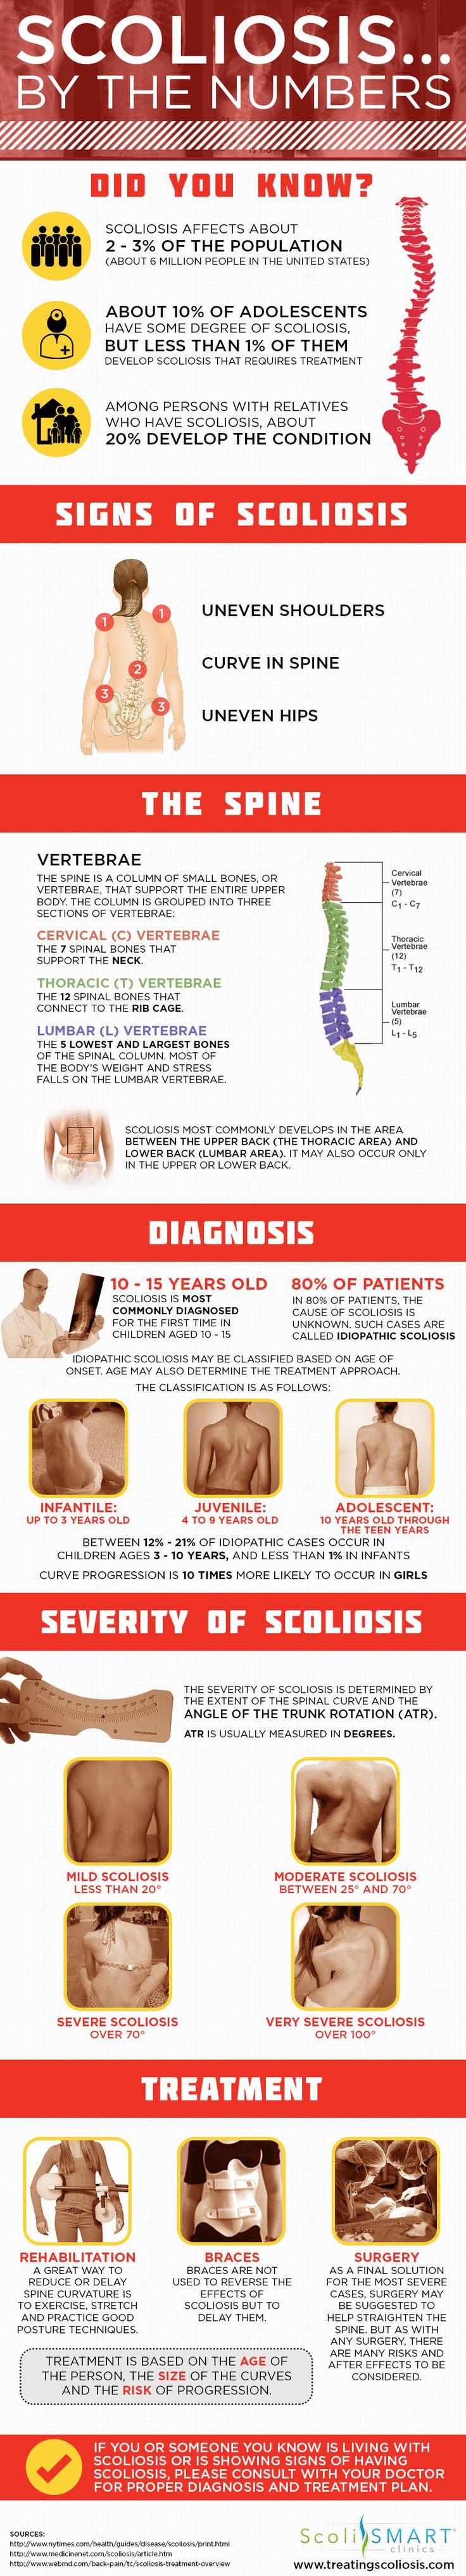 scoliosis-numbers